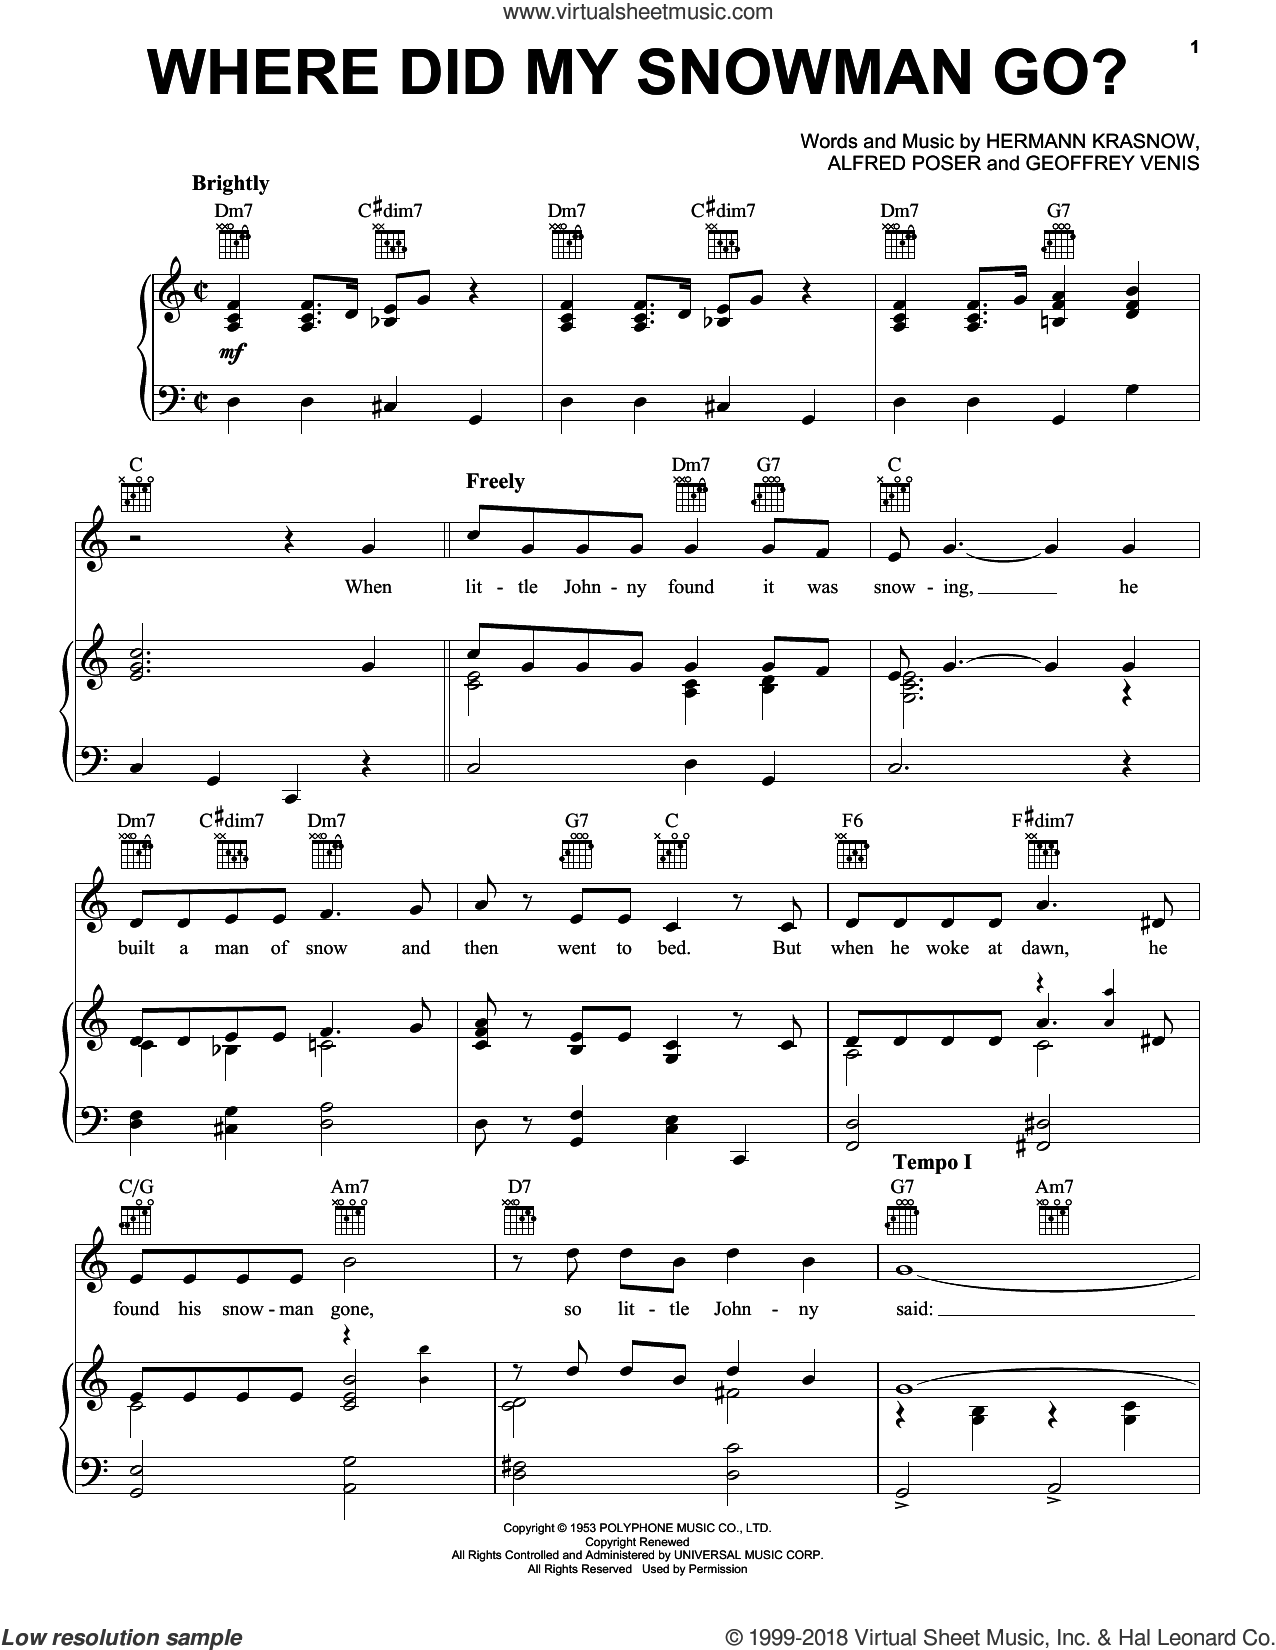 Where Did My Snowman Go? sheet music for voice, piano or guitar by Hermann Krasnow